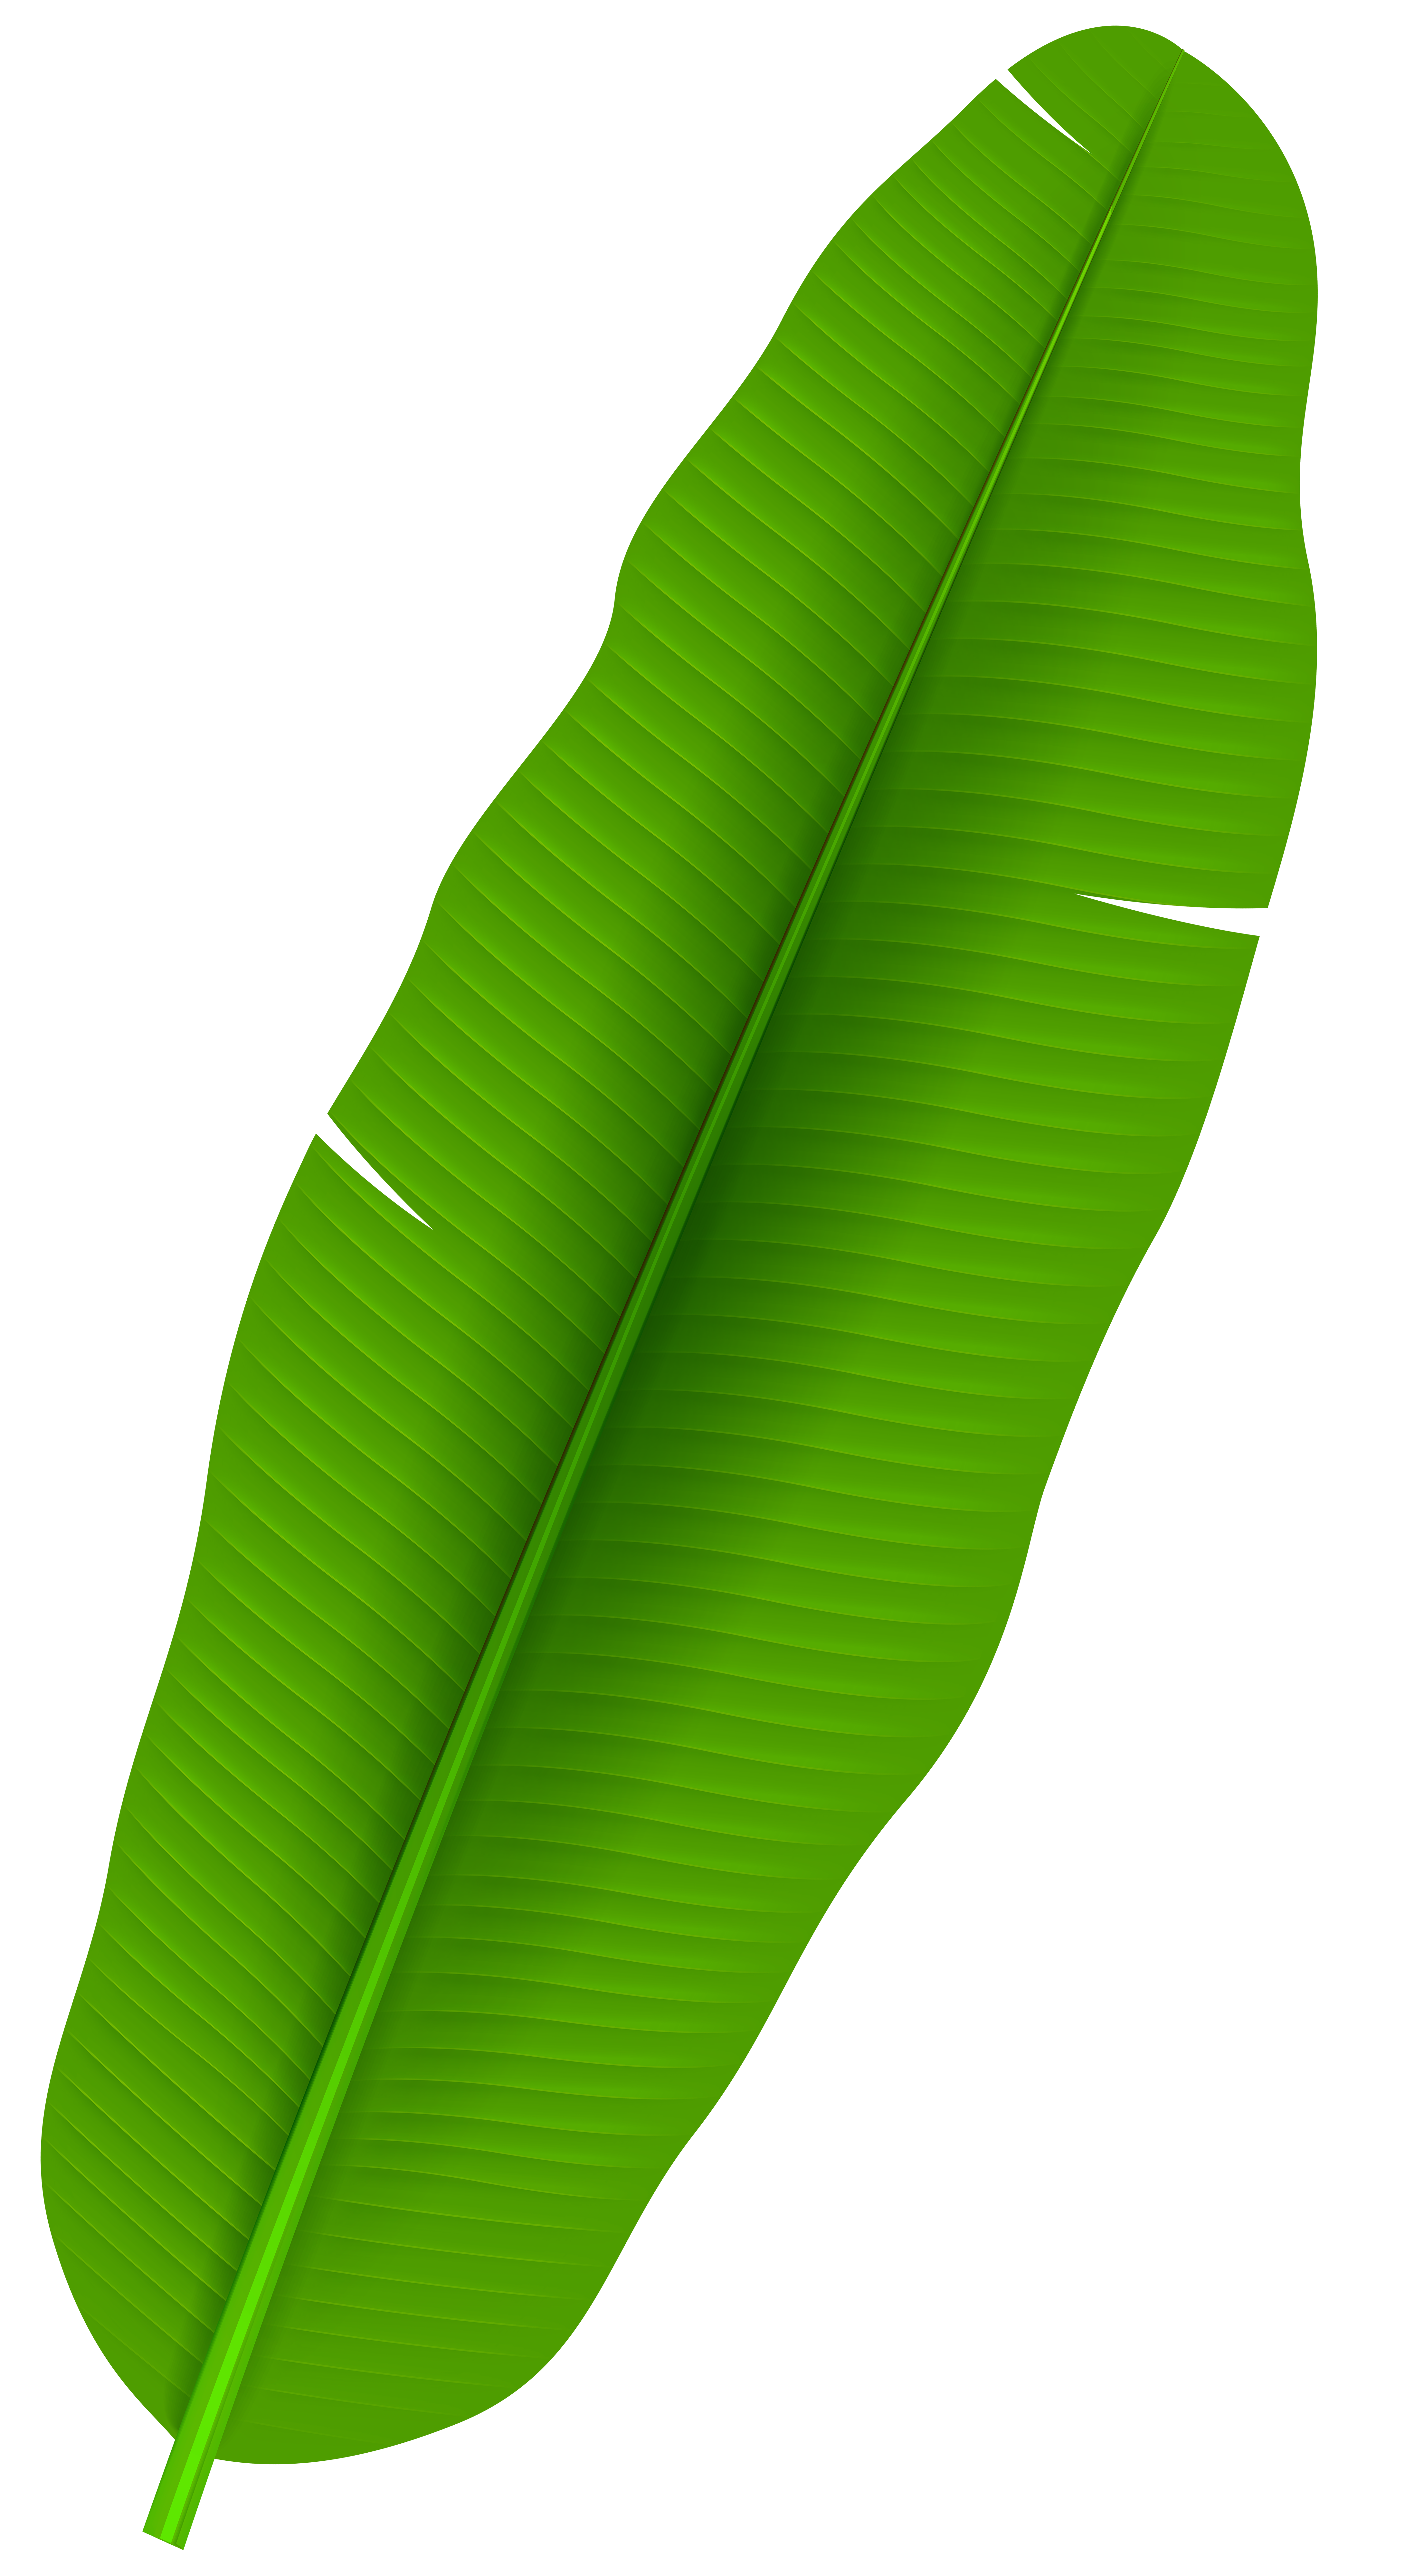 Banana leaves png. Exotic palm leaf transparent